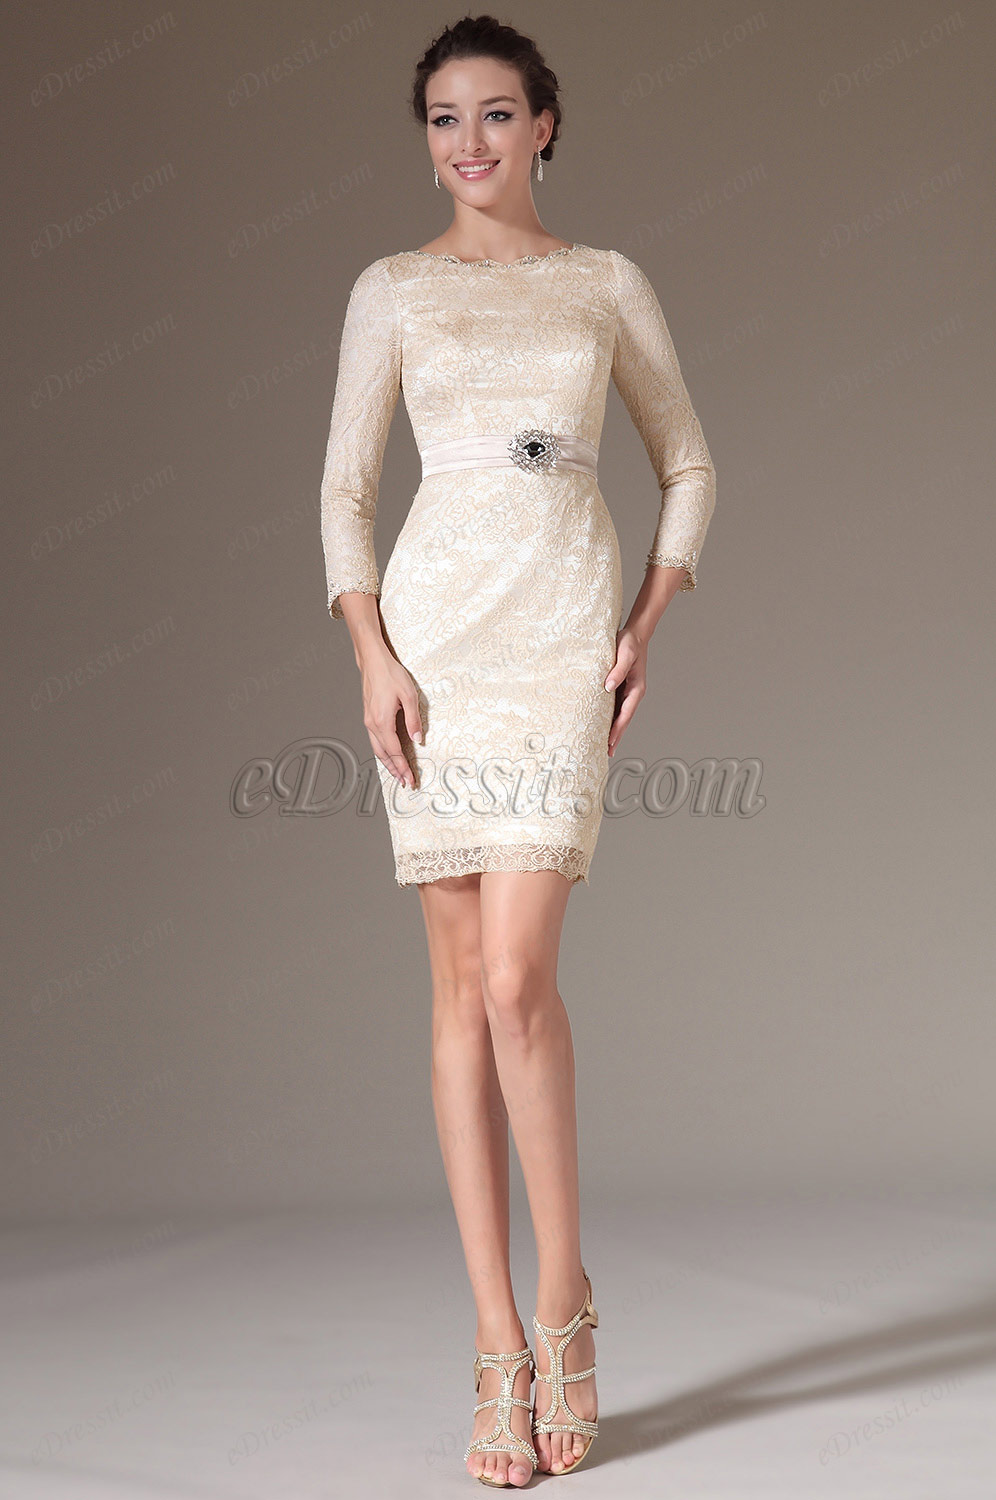 2014 New Simple Overlace Sleeves Mother of the Bride Dress 26144214 Mother Of The Mother Of The Bride Dresses With Scarf